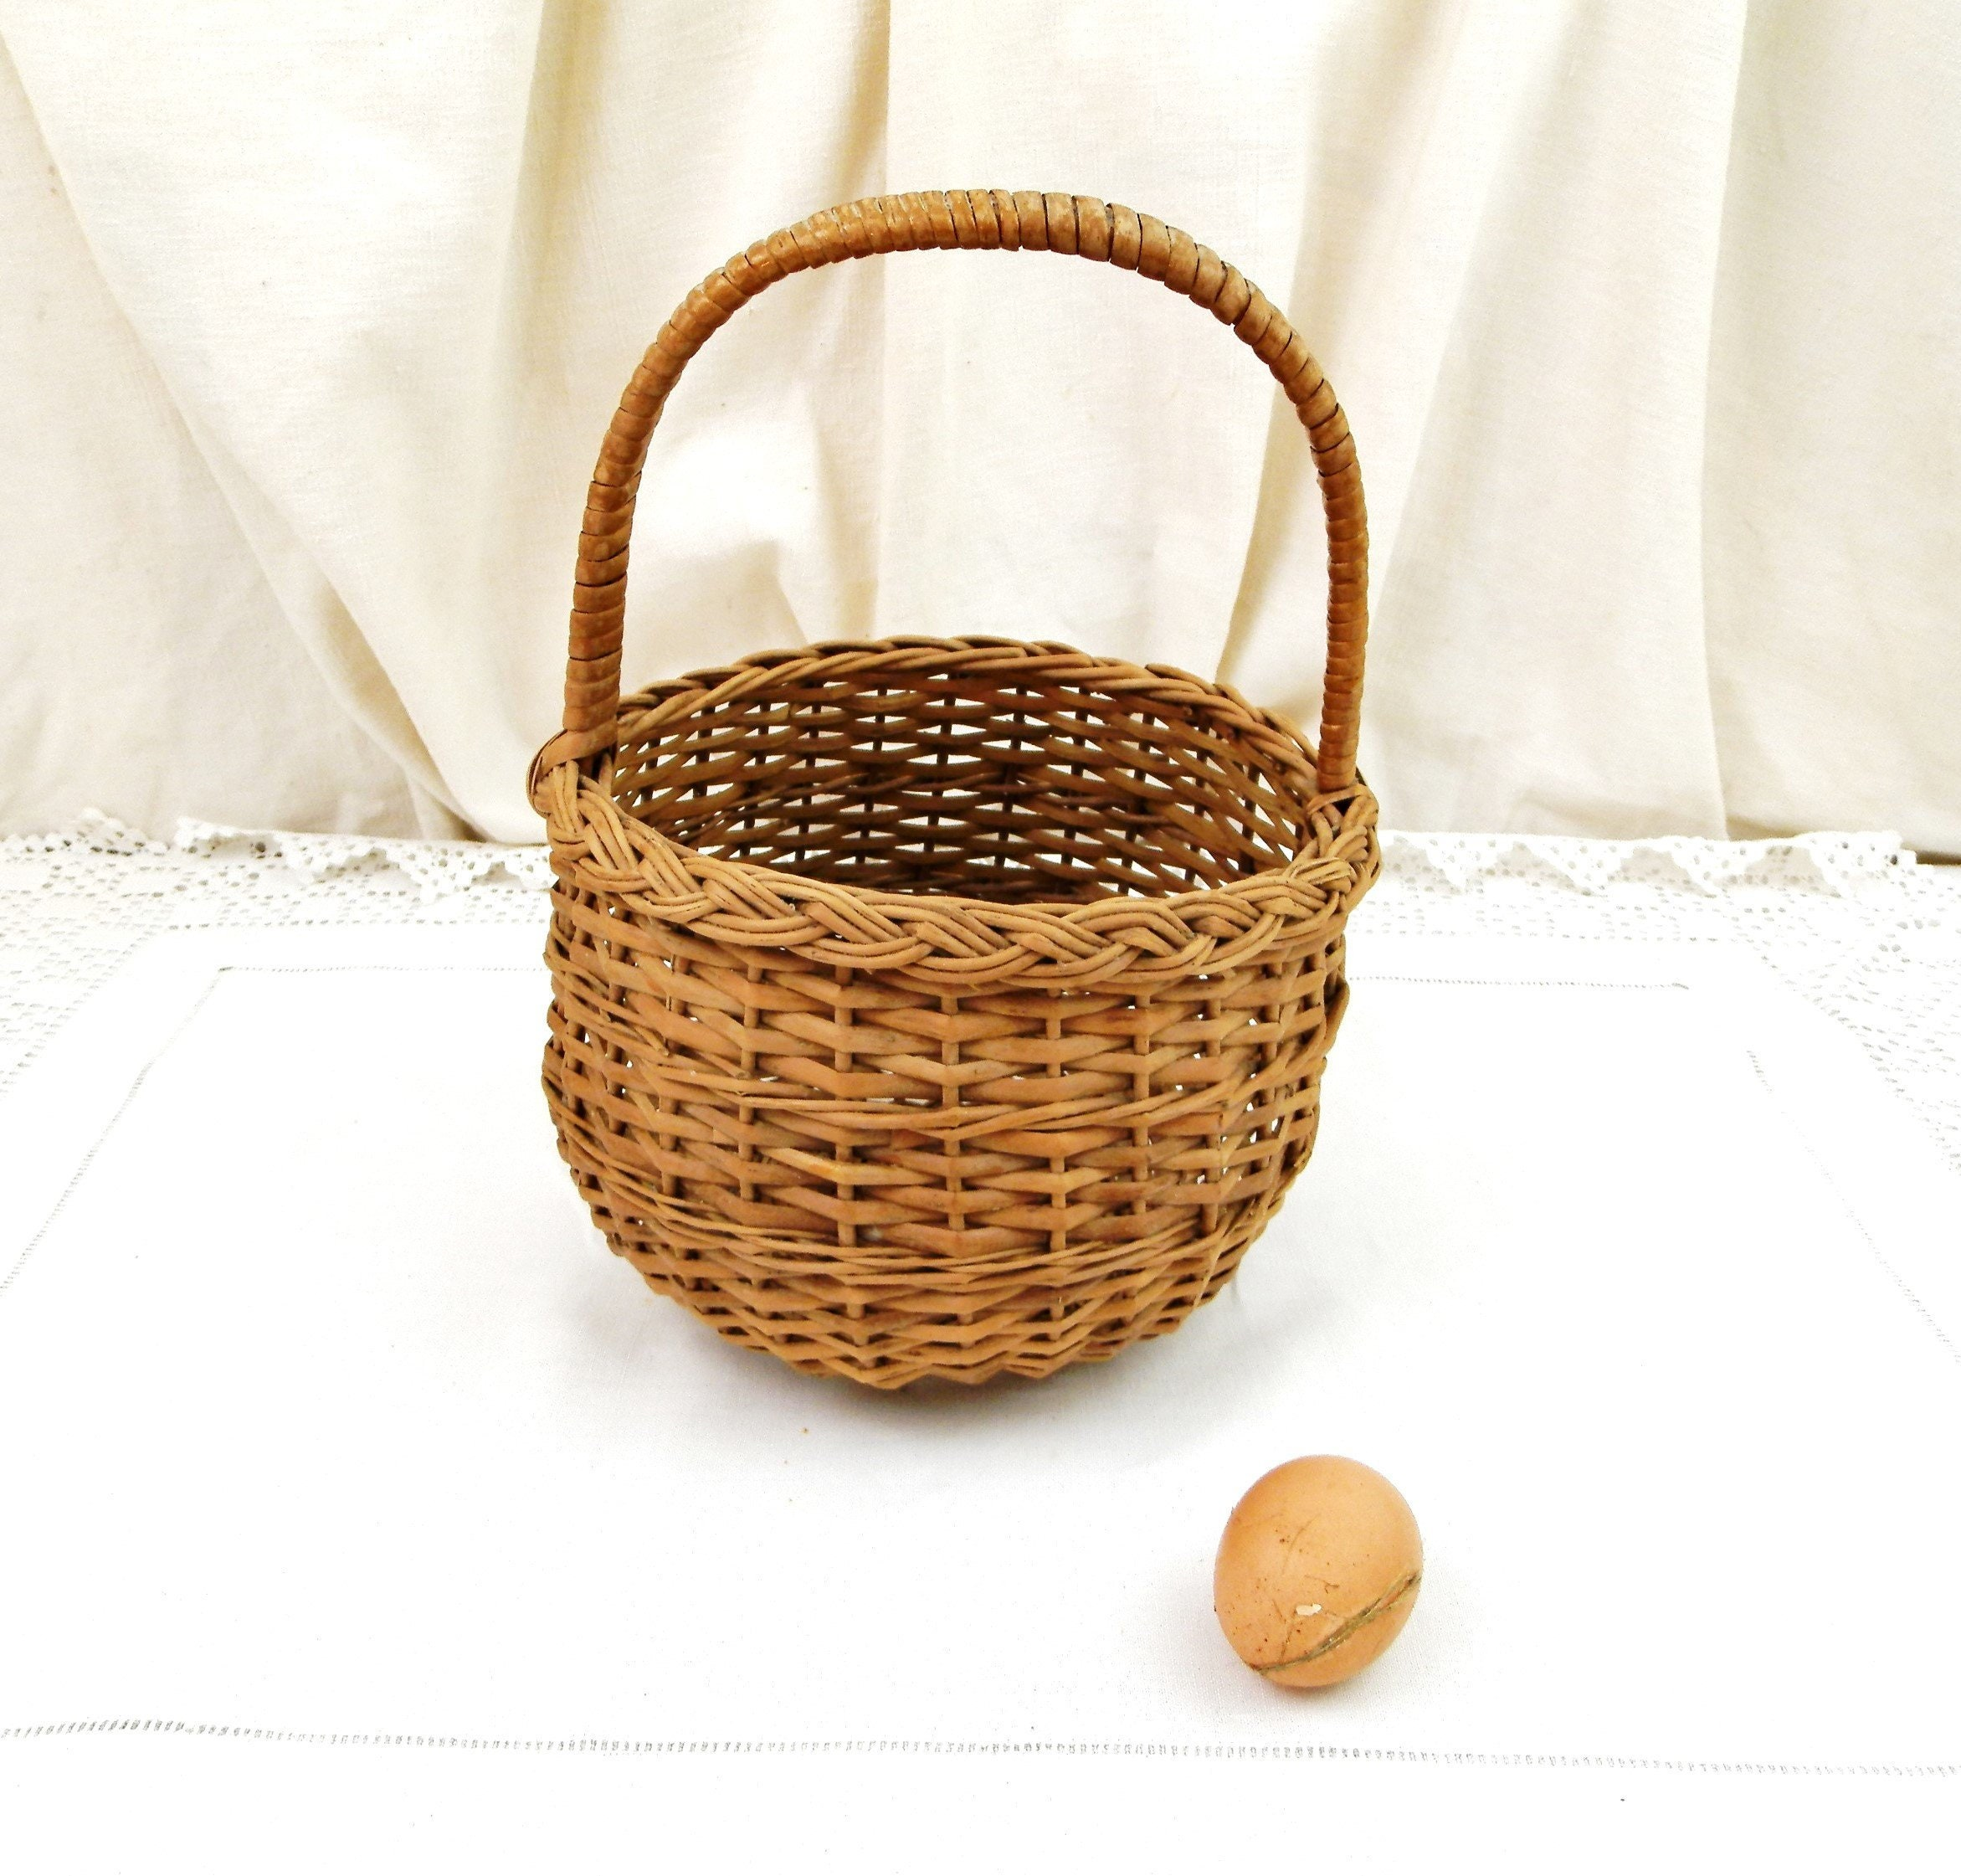 Vintage French Woven Wicker Round Basket With Top Handle Retro Shabby Chateau Chic Basketware From France Country Farmhouse Cottage Decor